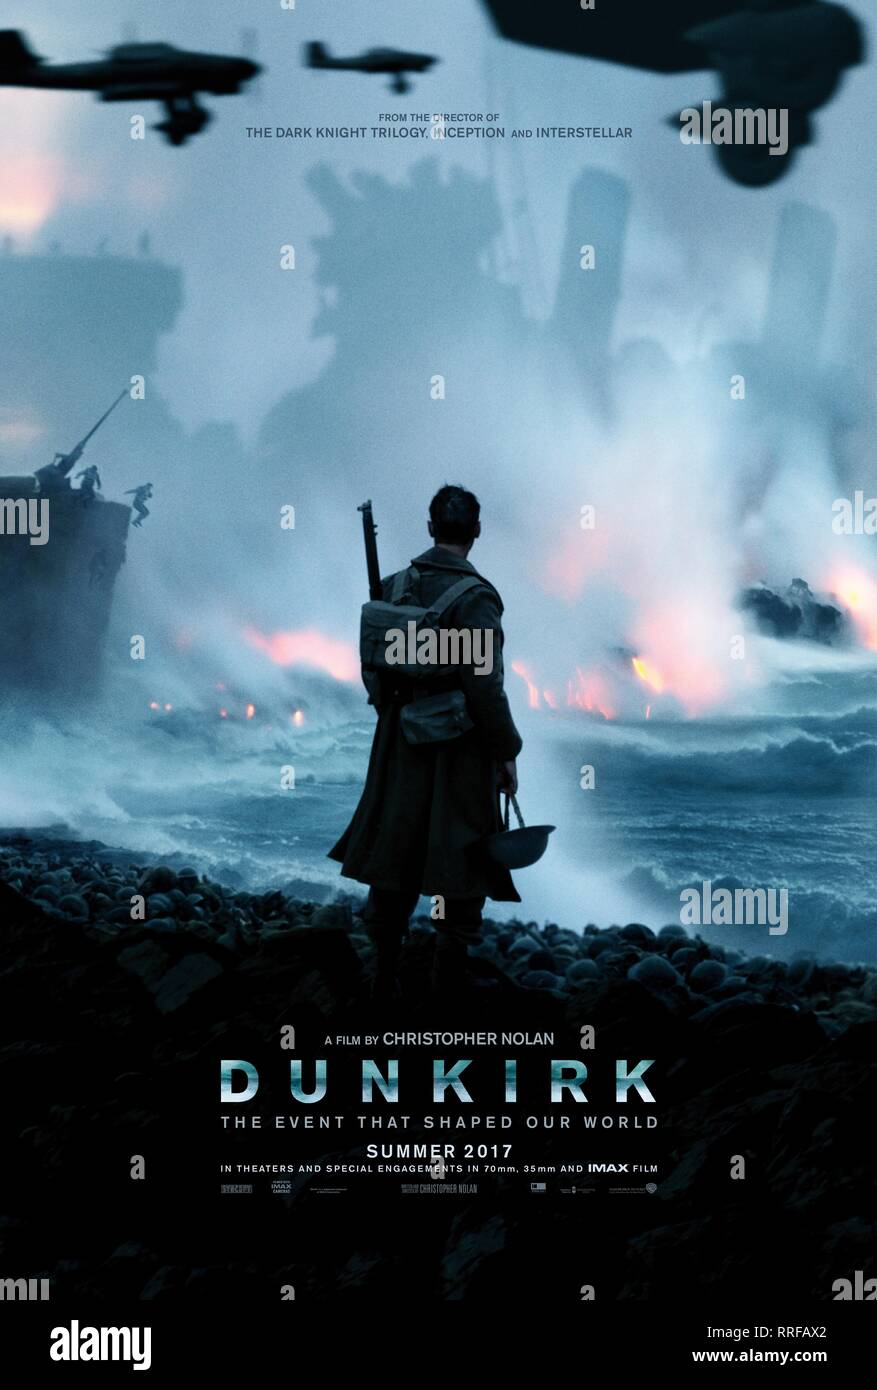 DUNKIRK, MOVIE POSTER, 2017 - Stock Image